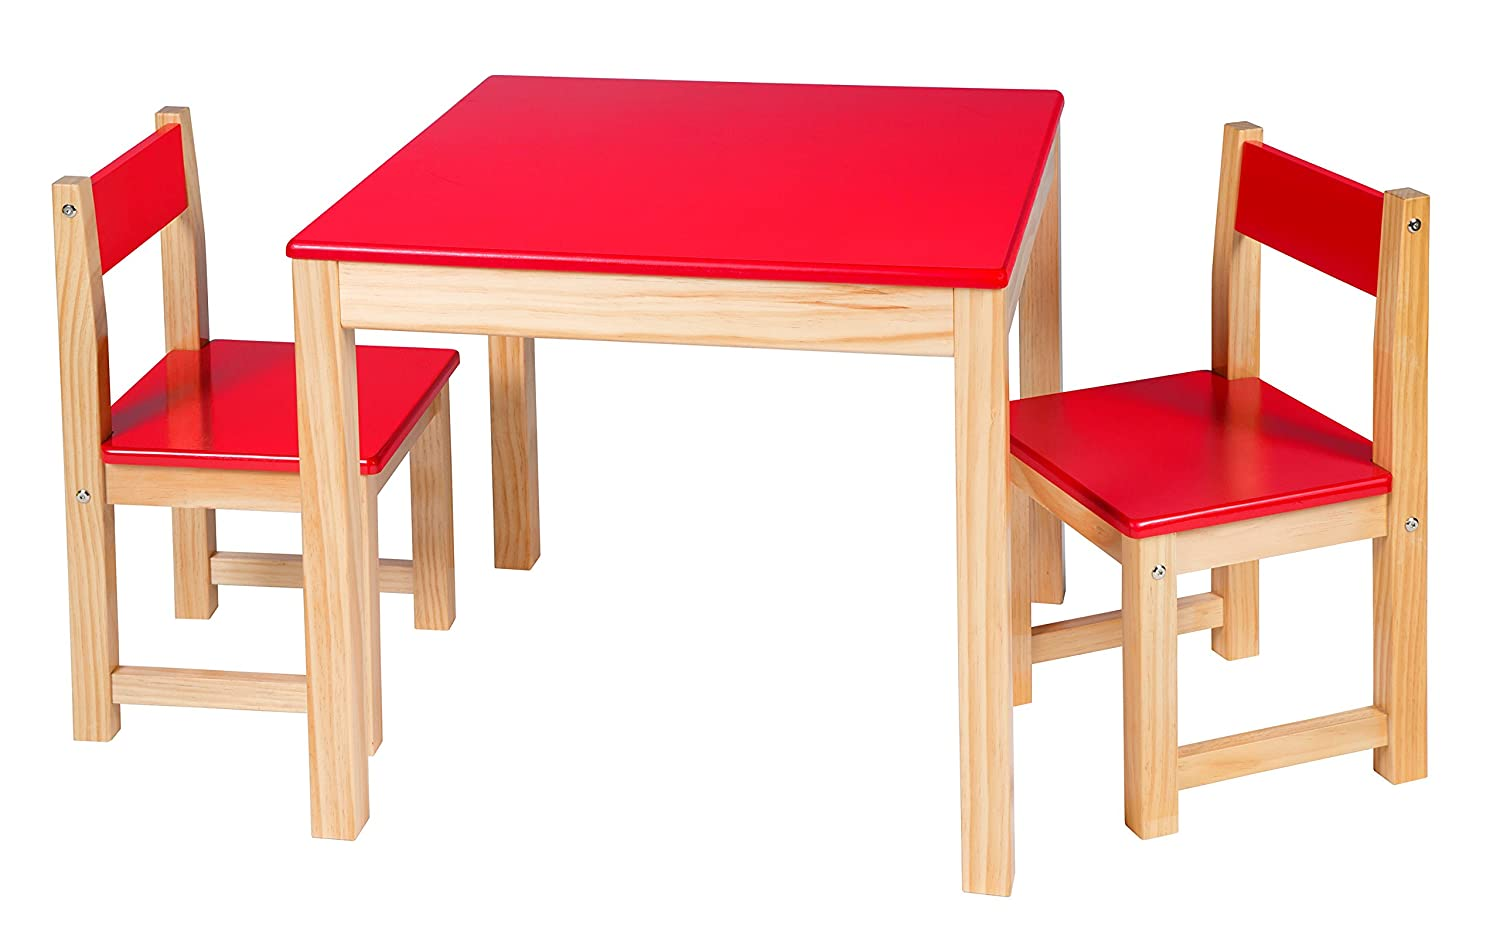 Amazon.com ALEX Toys Artist Studio Wooden Table and Chair Set Red Toys u0026 Games  sc 1 st  Amazon.com & Amazon.com: ALEX Toys Artist Studio Wooden Table and Chair Set Red ...